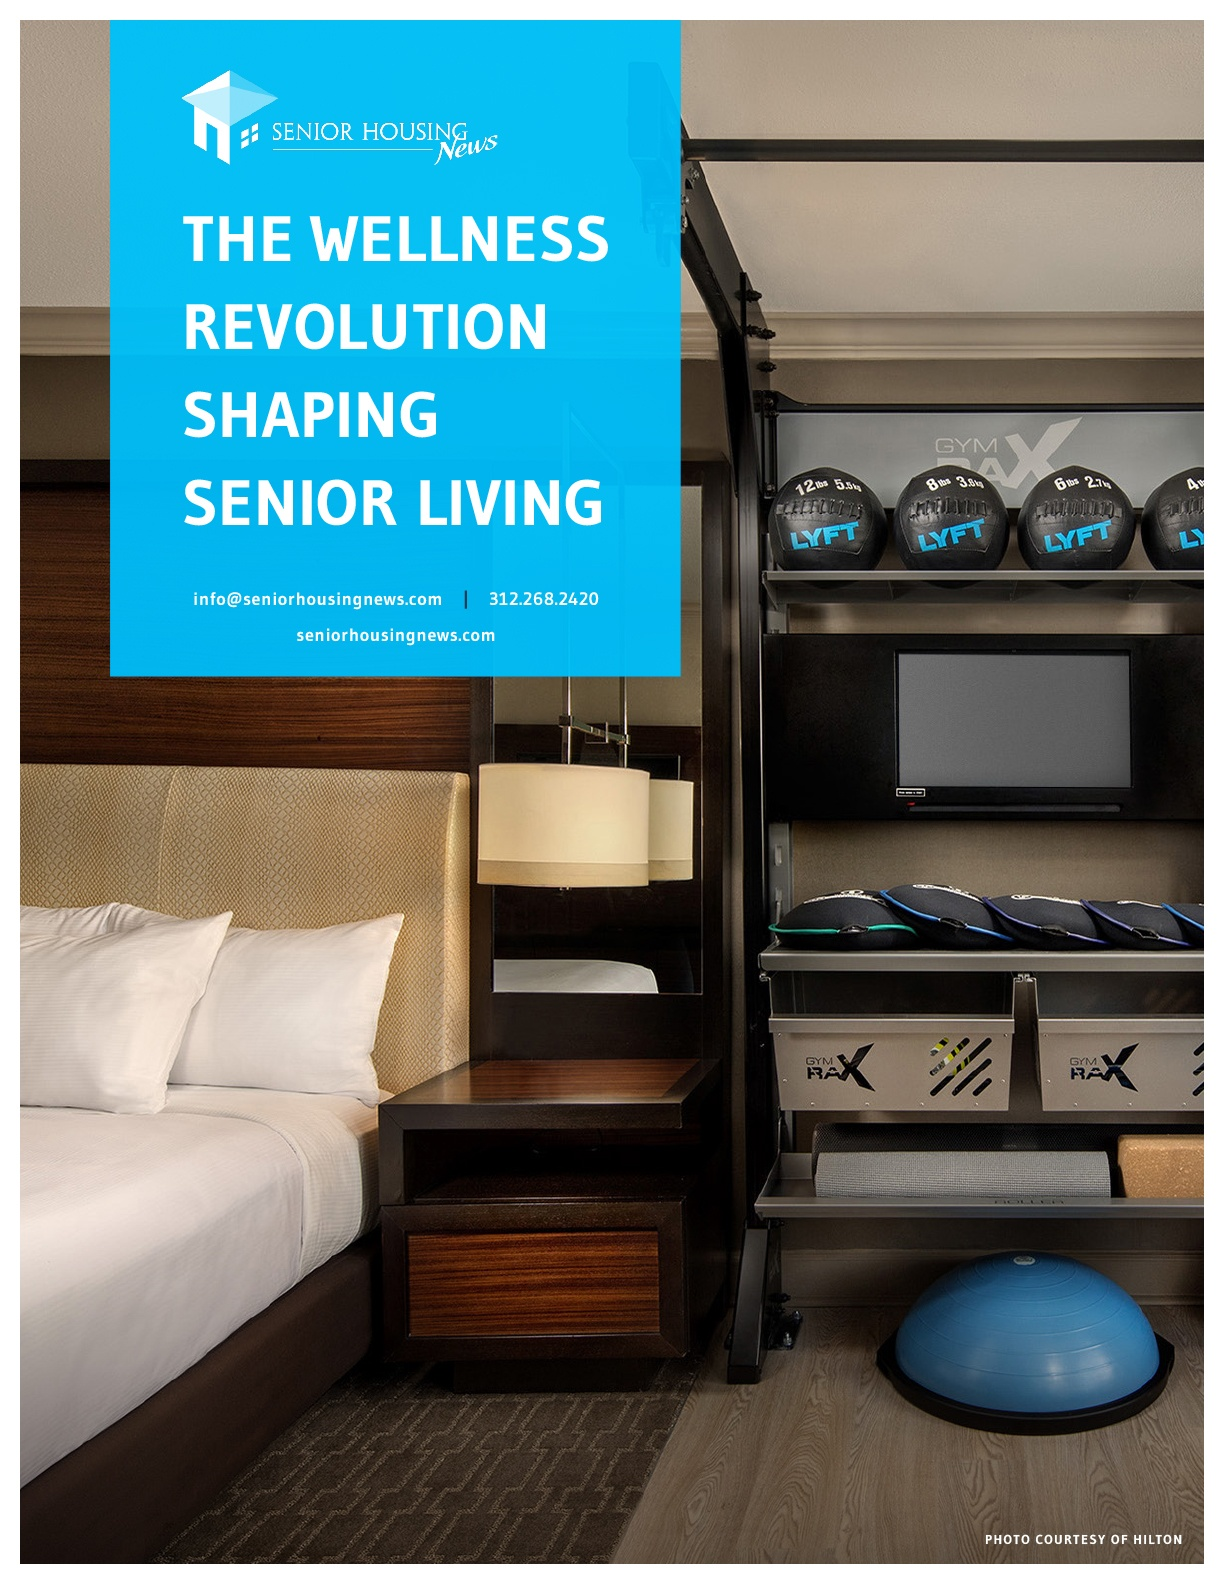 Wellness-Featured-Image-1